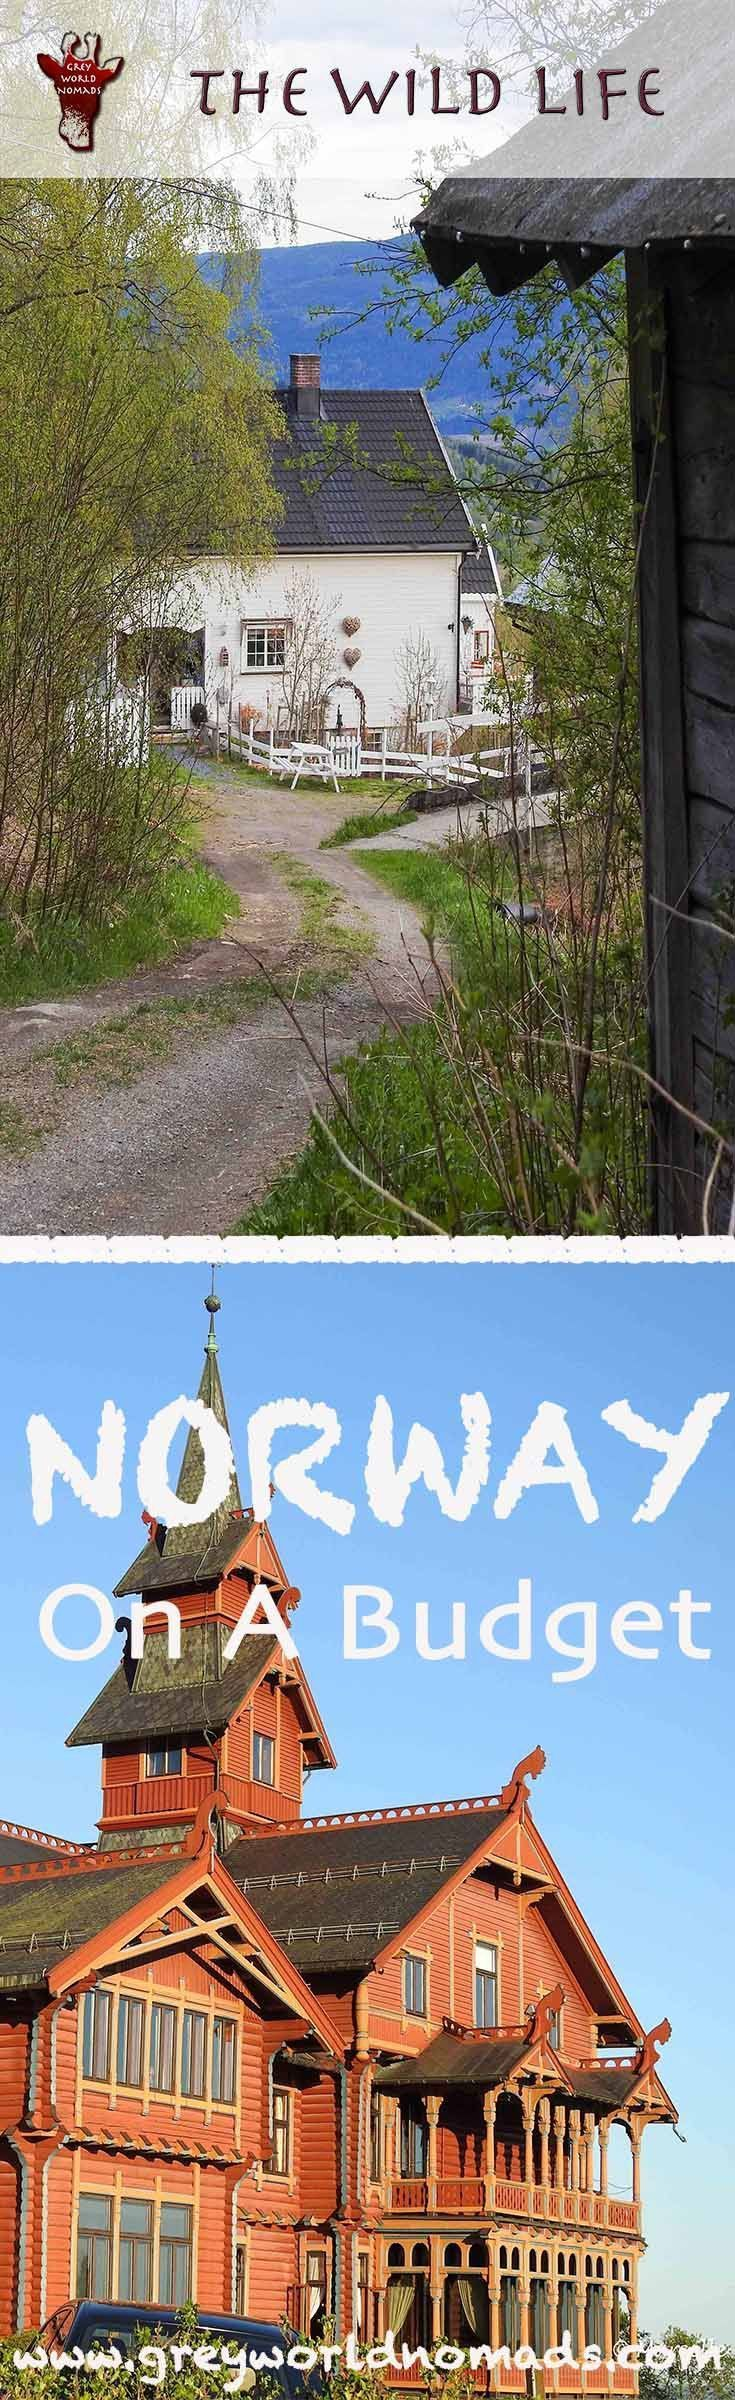 Travel Norway on a budget. Get our firsthand budget travel tips for traveling Norway in a nutshell without breaking the bank. #norway #VisitNorway #norwayonabudget